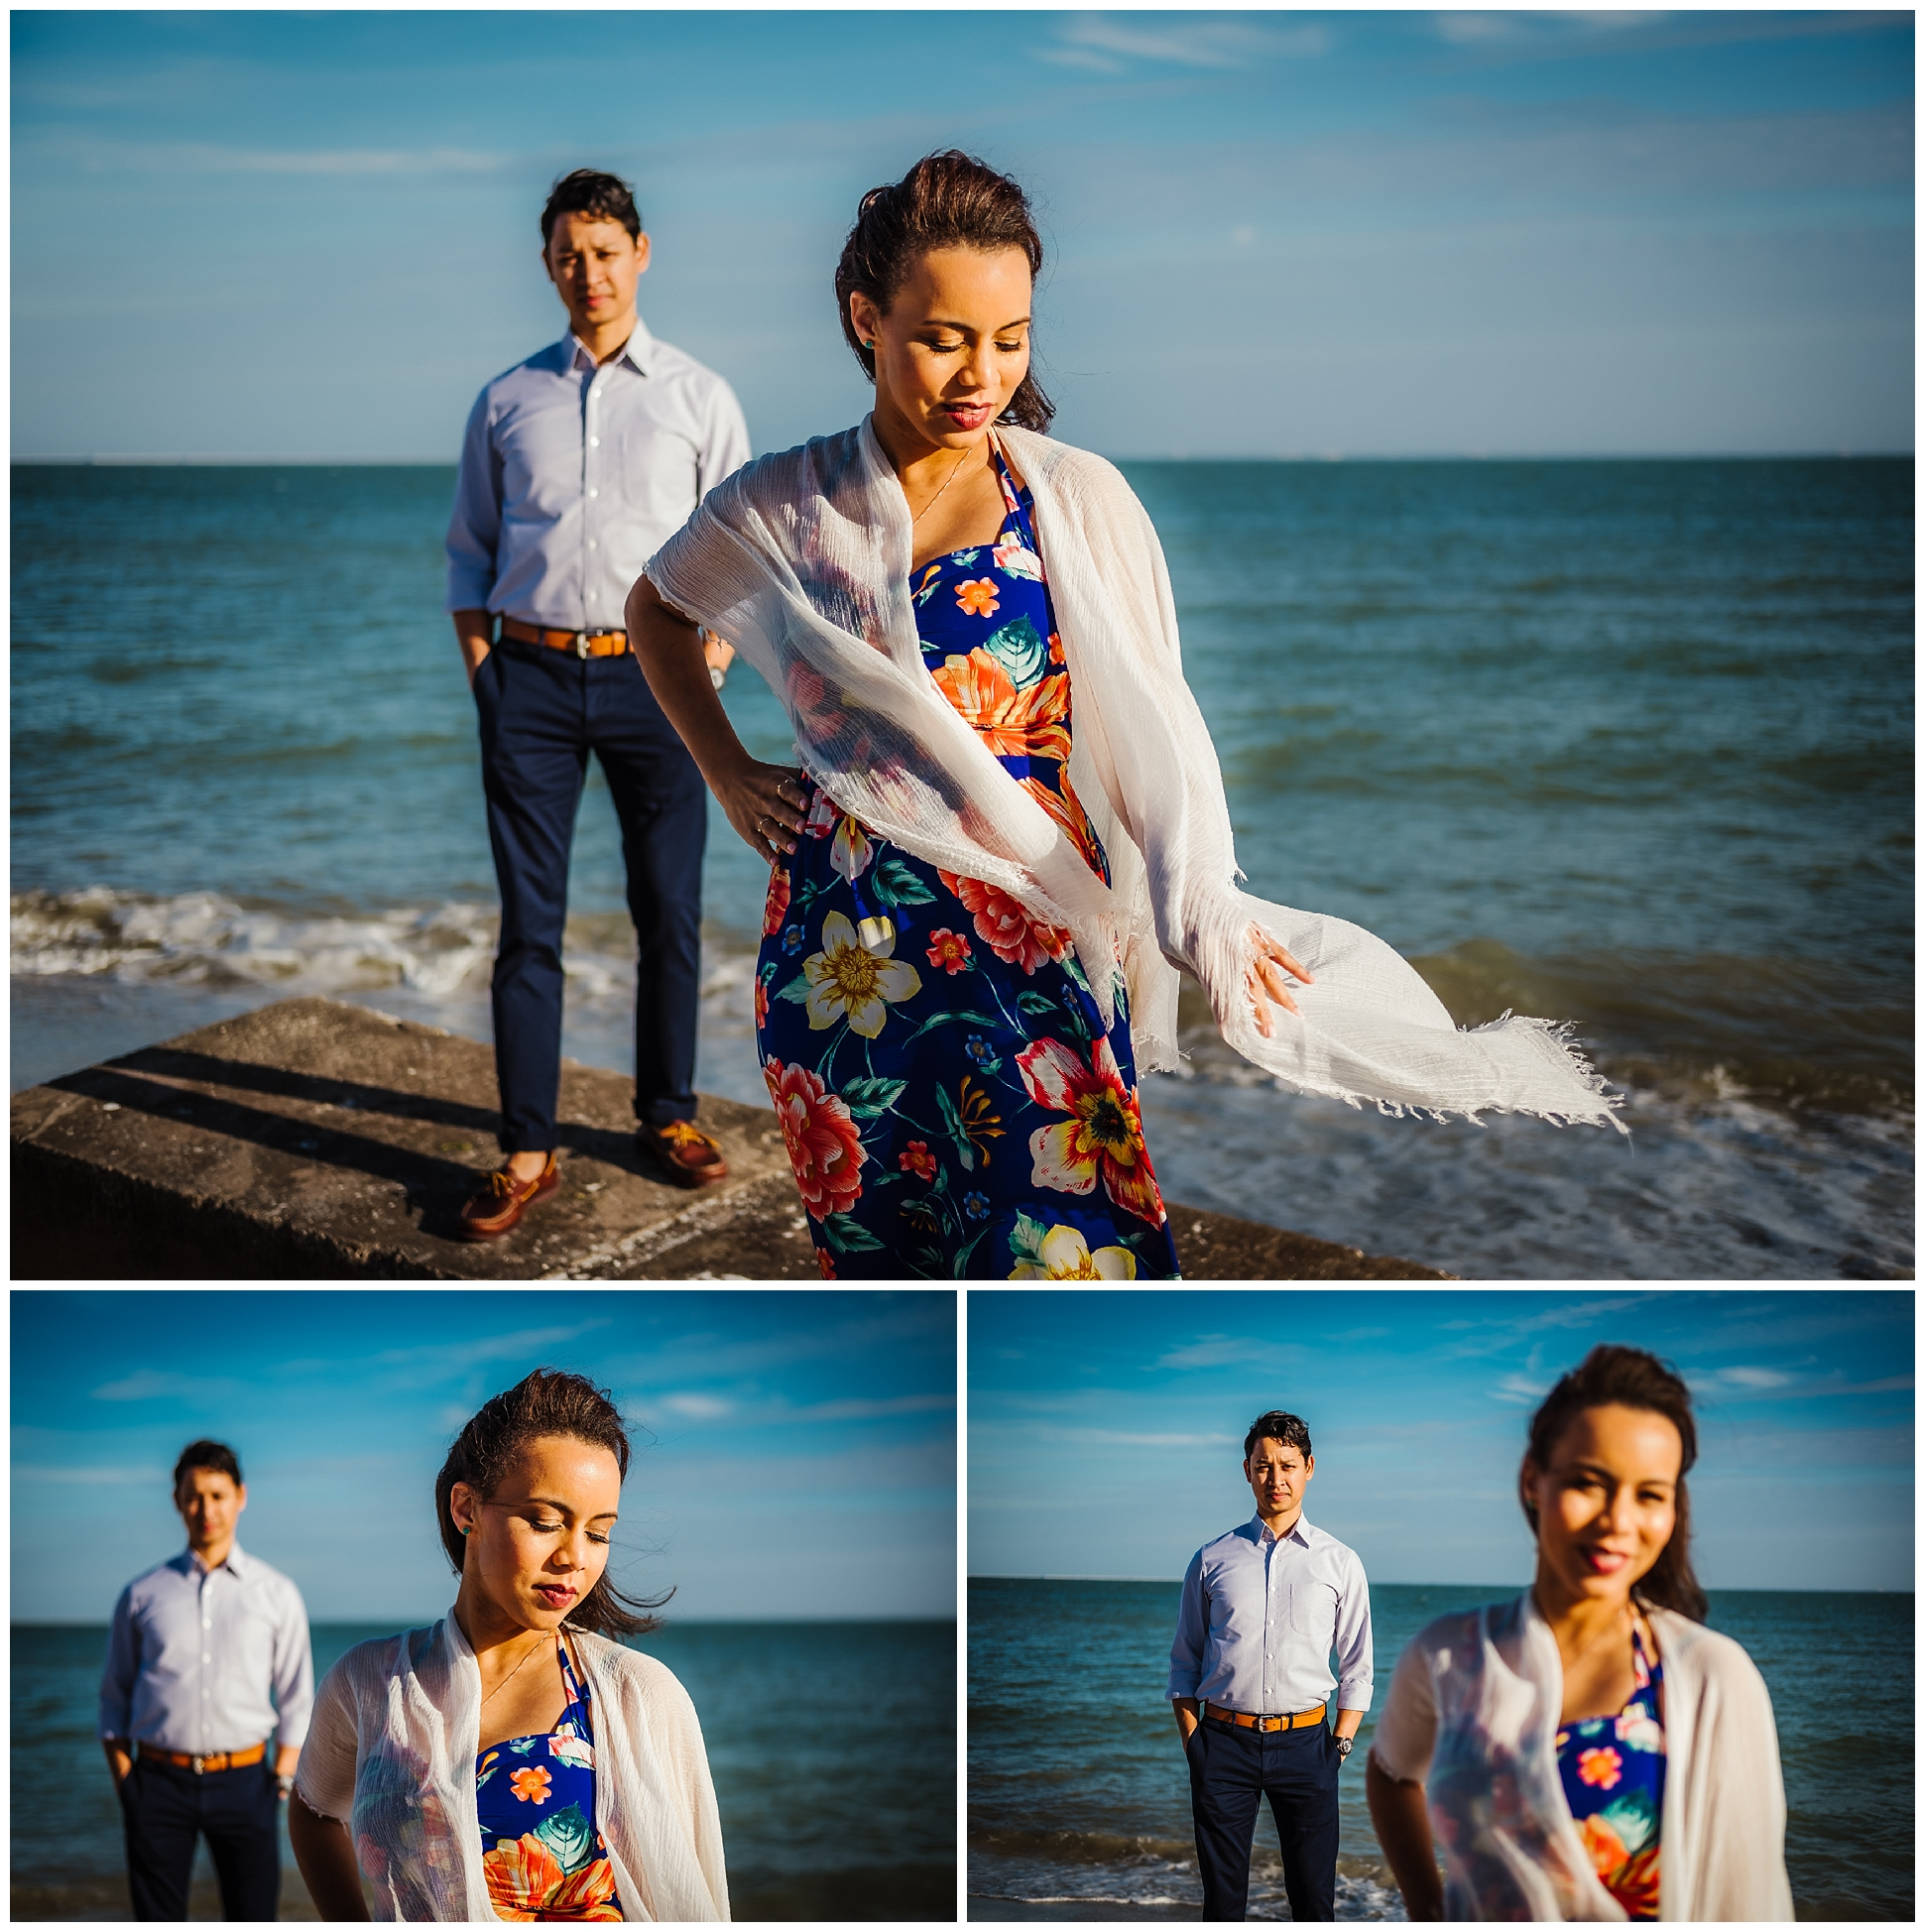 tampa-engagement-photographer-fort-desoto-ruins-sunset-colorful_0007.jpg